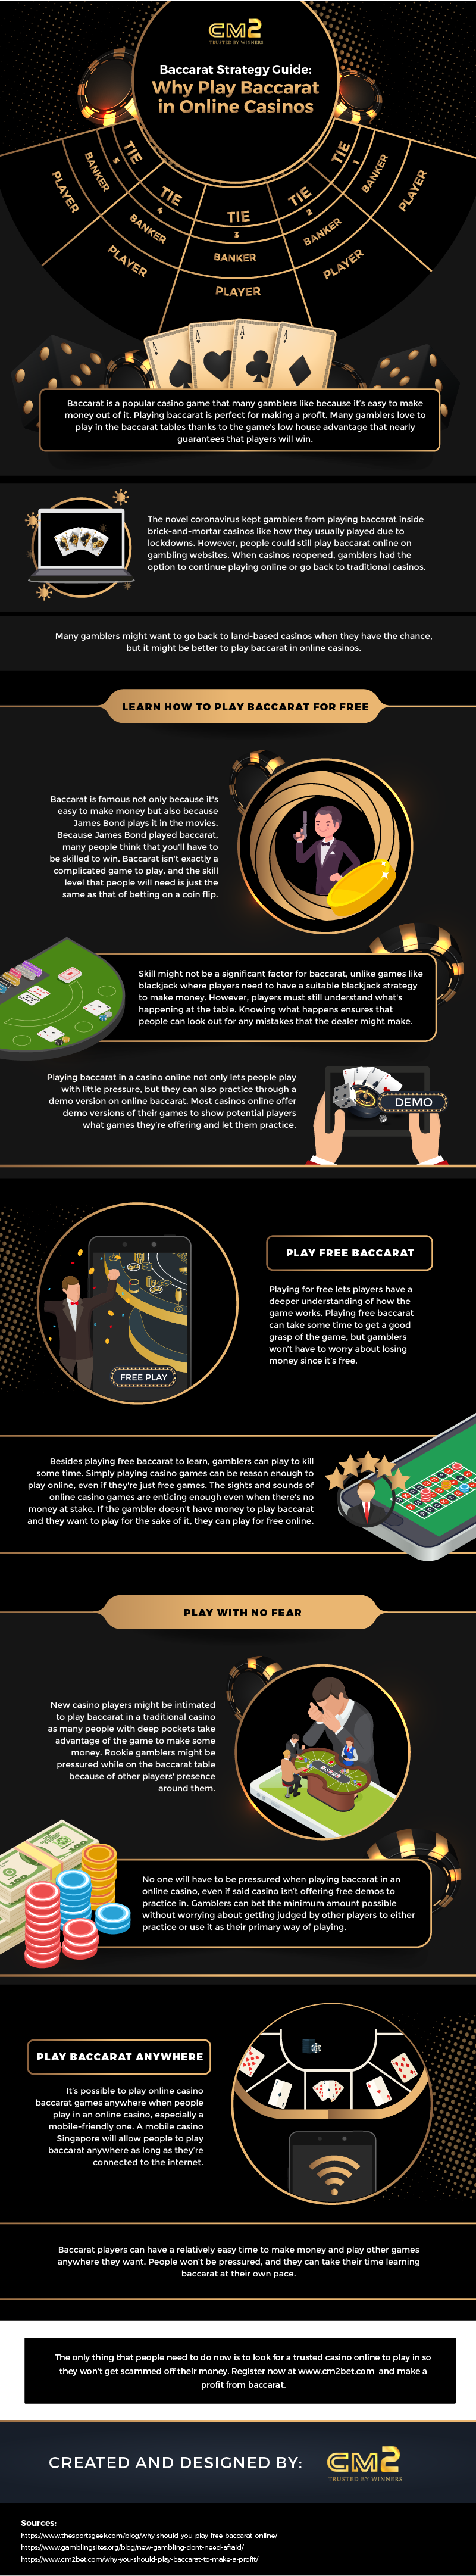 Why Play Baccarat in Online Casinos - Infographic